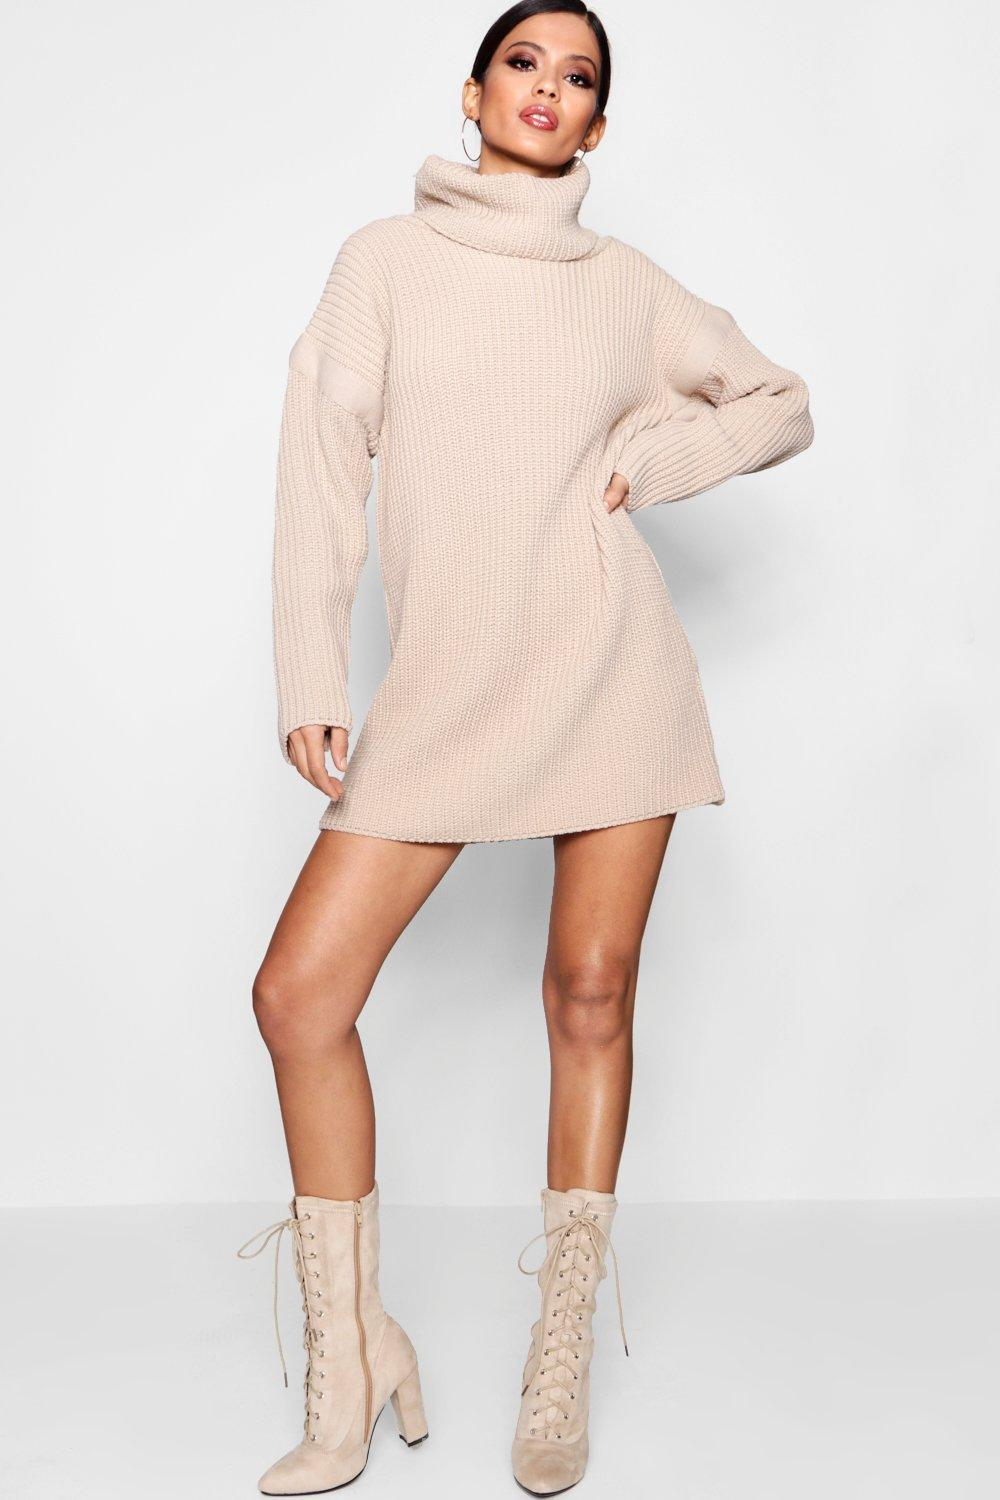 Jumper camel Roll Dress Dress Dress Neck camel Neck Roll Neck Roll Jumper Jumper RvwdTF